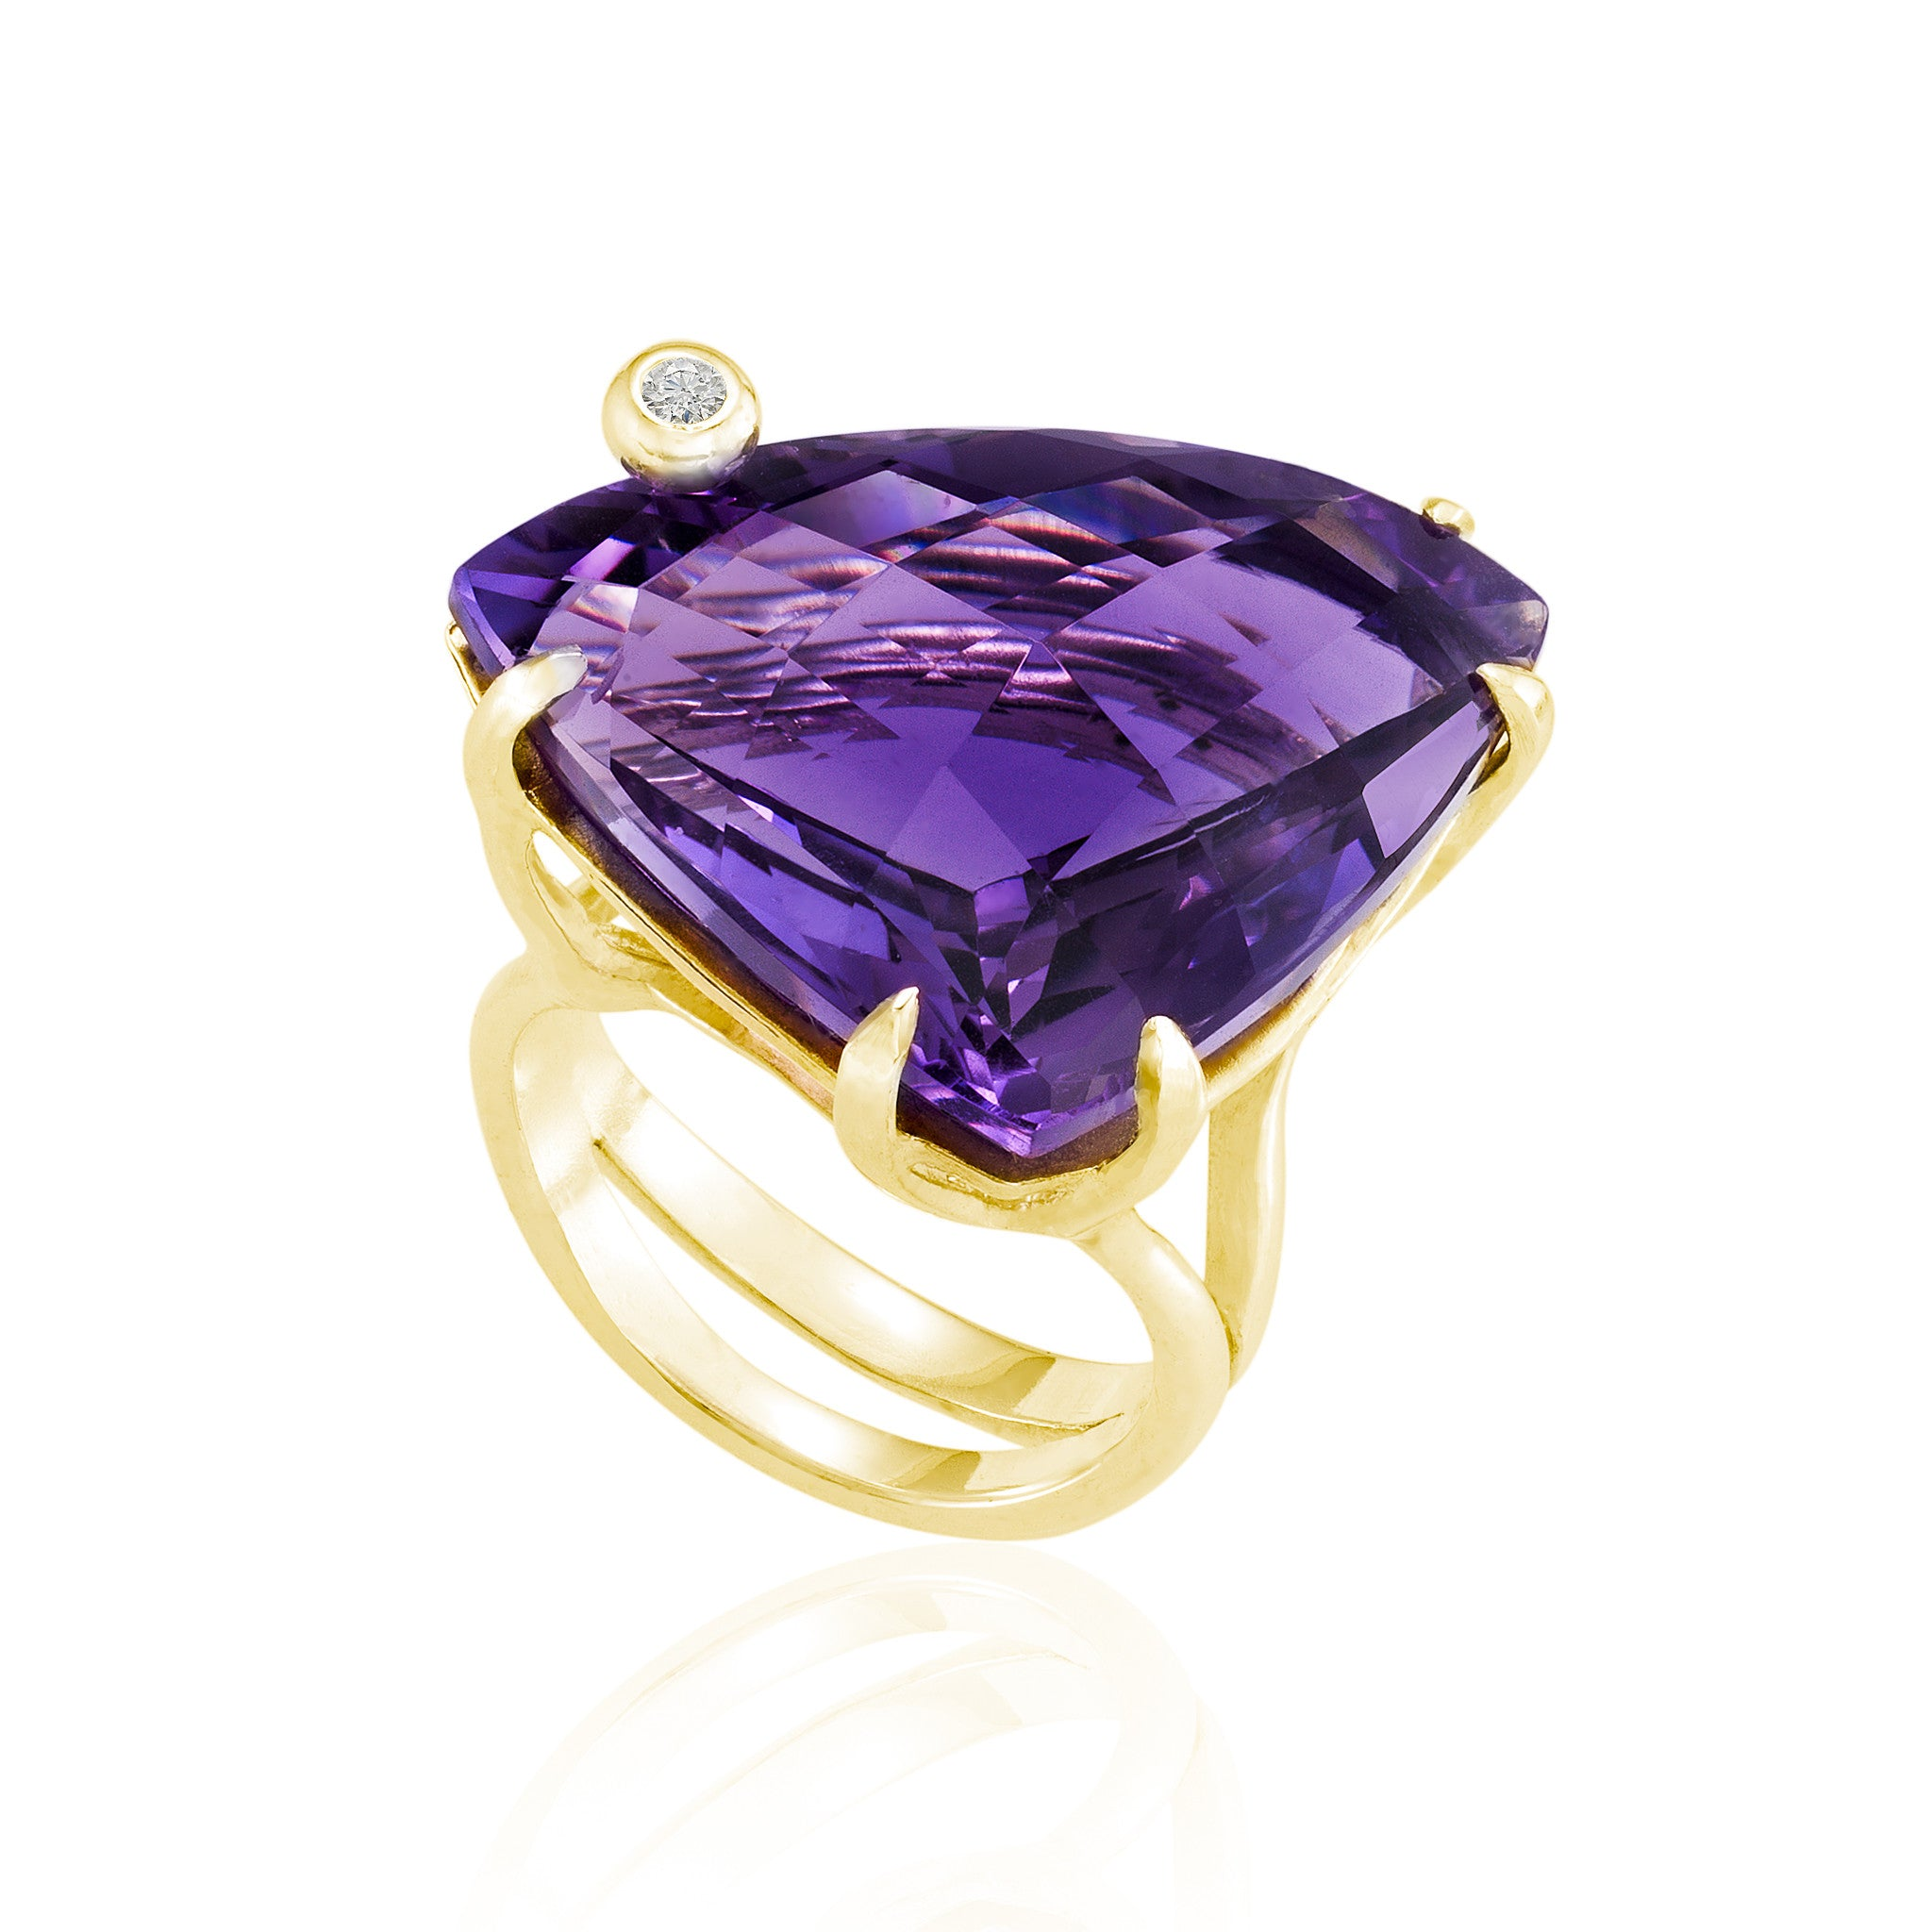 rings amethist precious amethyst logan jewellery divina engagement ring jan fine diamond la green